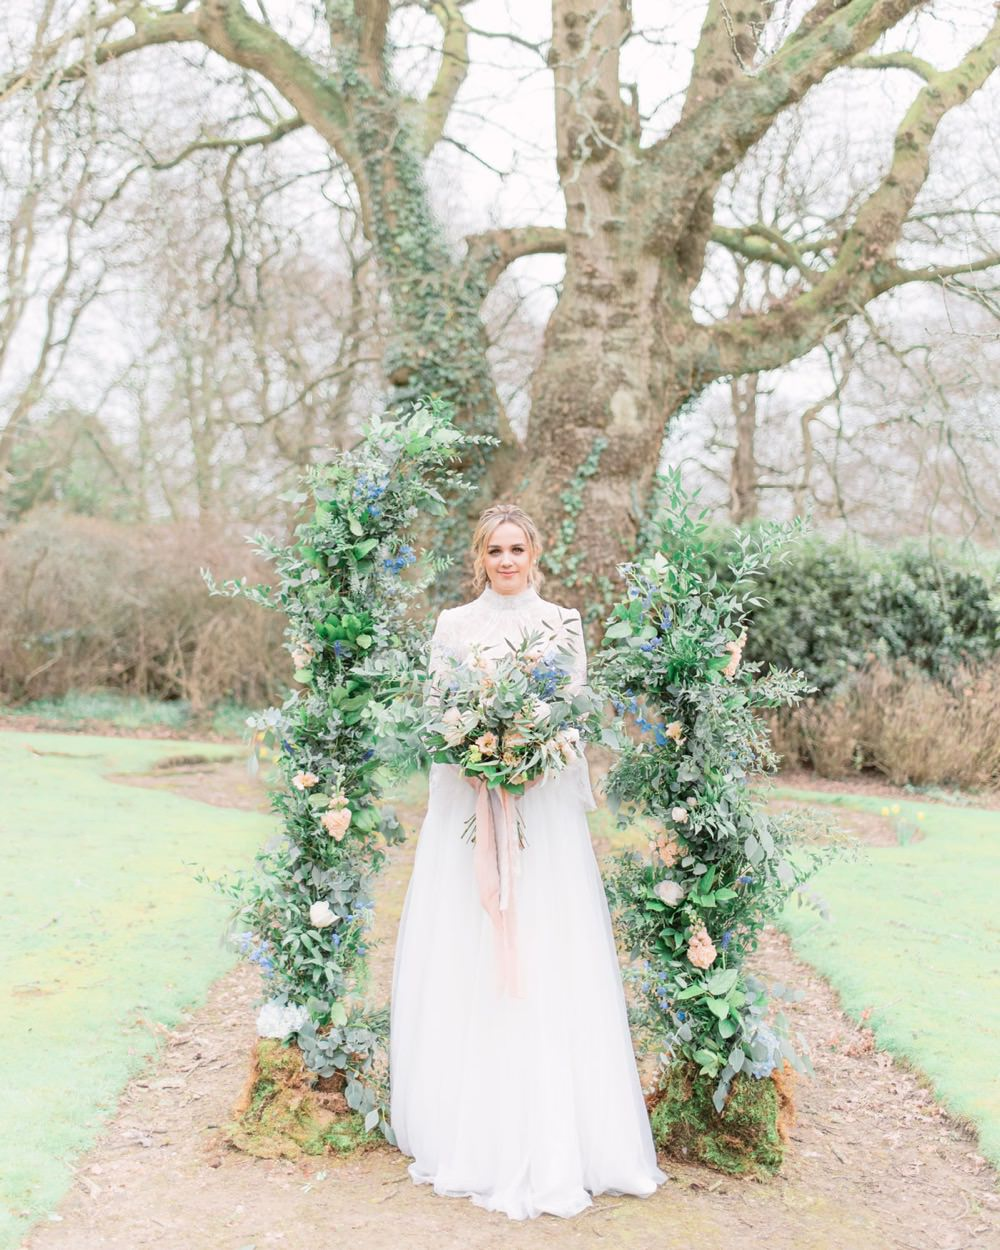 Unstructured Flower Arch Peach Greenery Foliage Backdrop Natural Elegant Wedding Ideas Yll Weddings